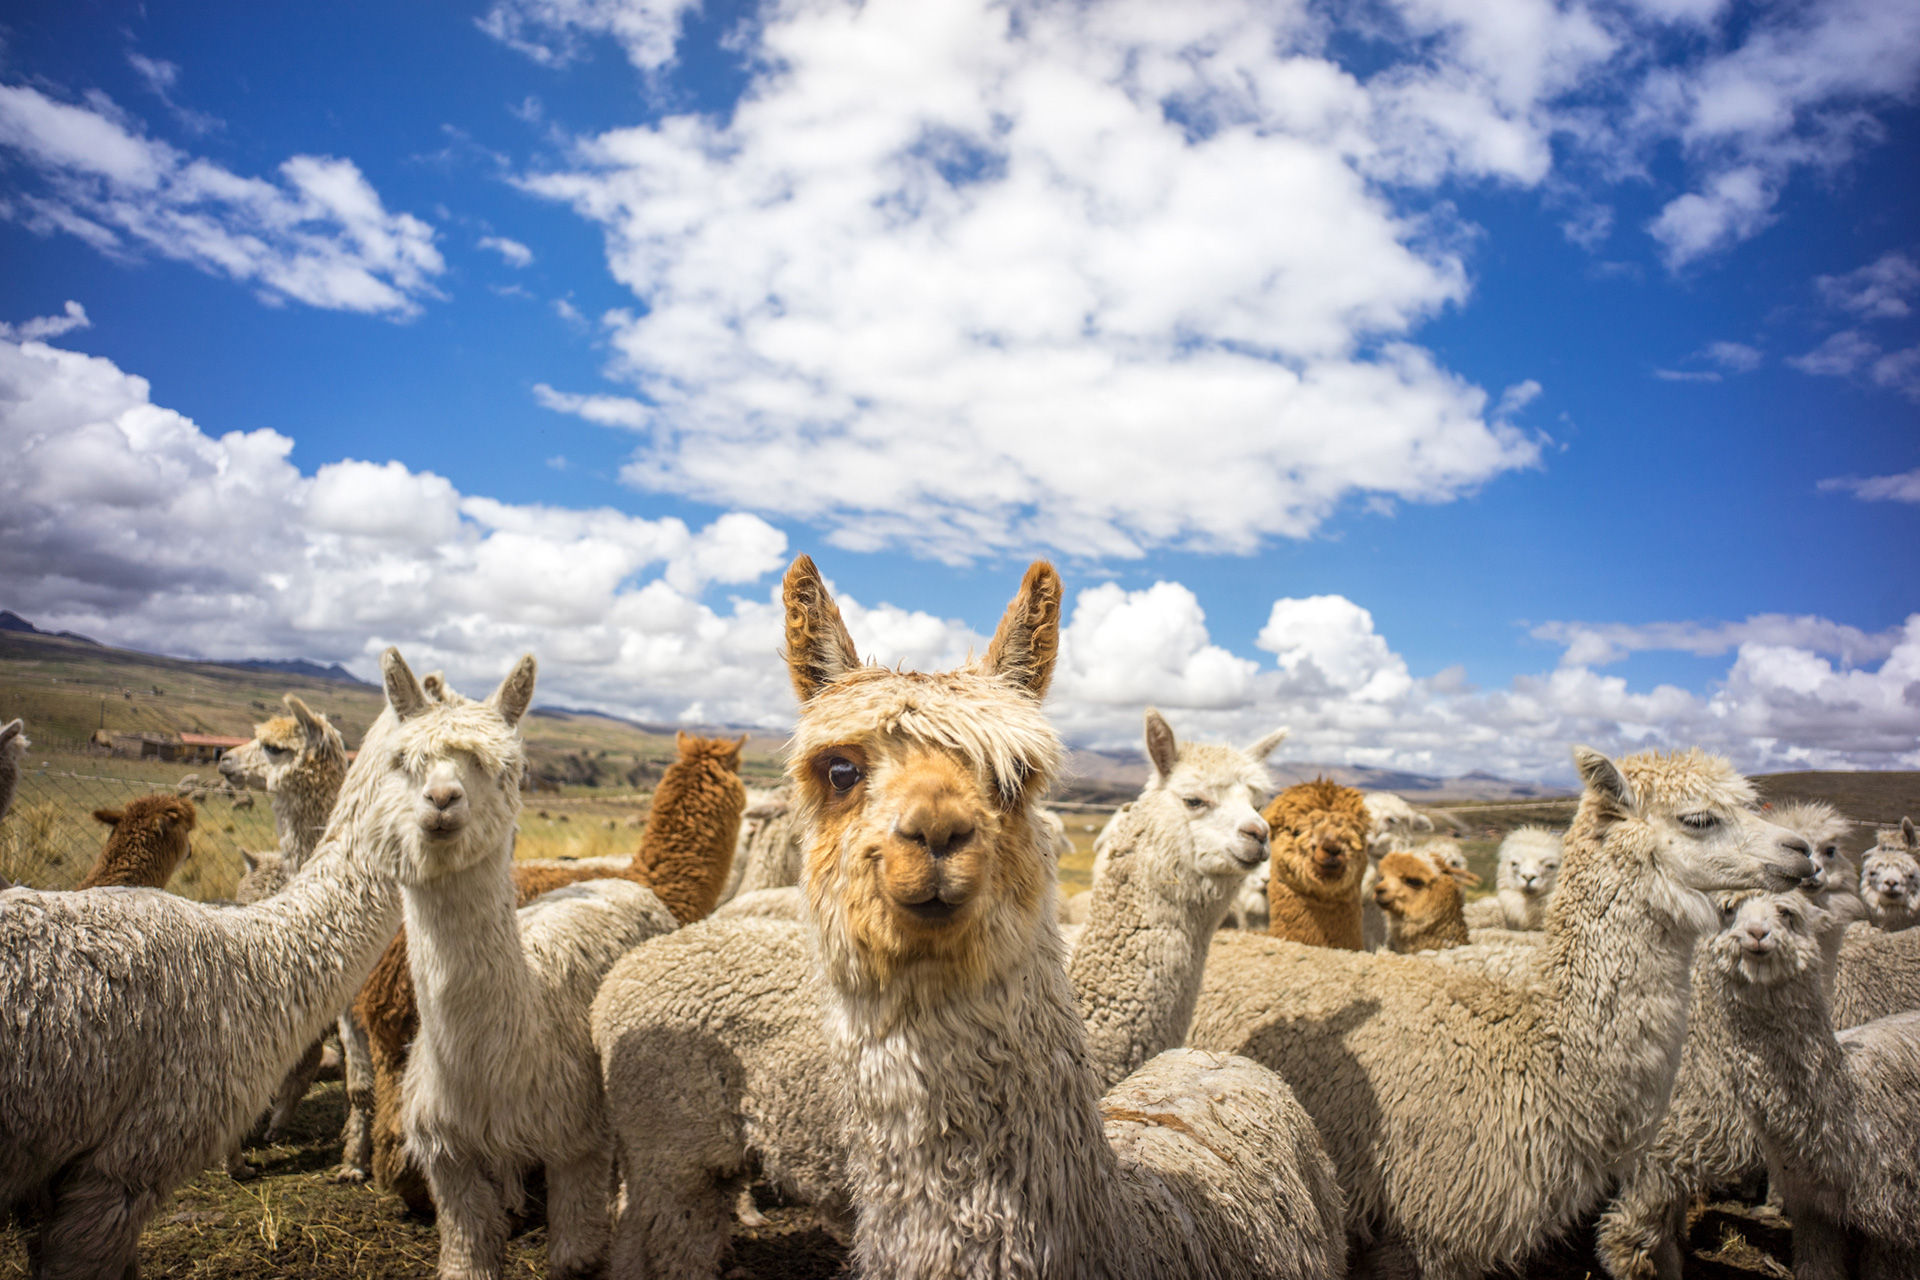 Alpacas on Farm in Peru